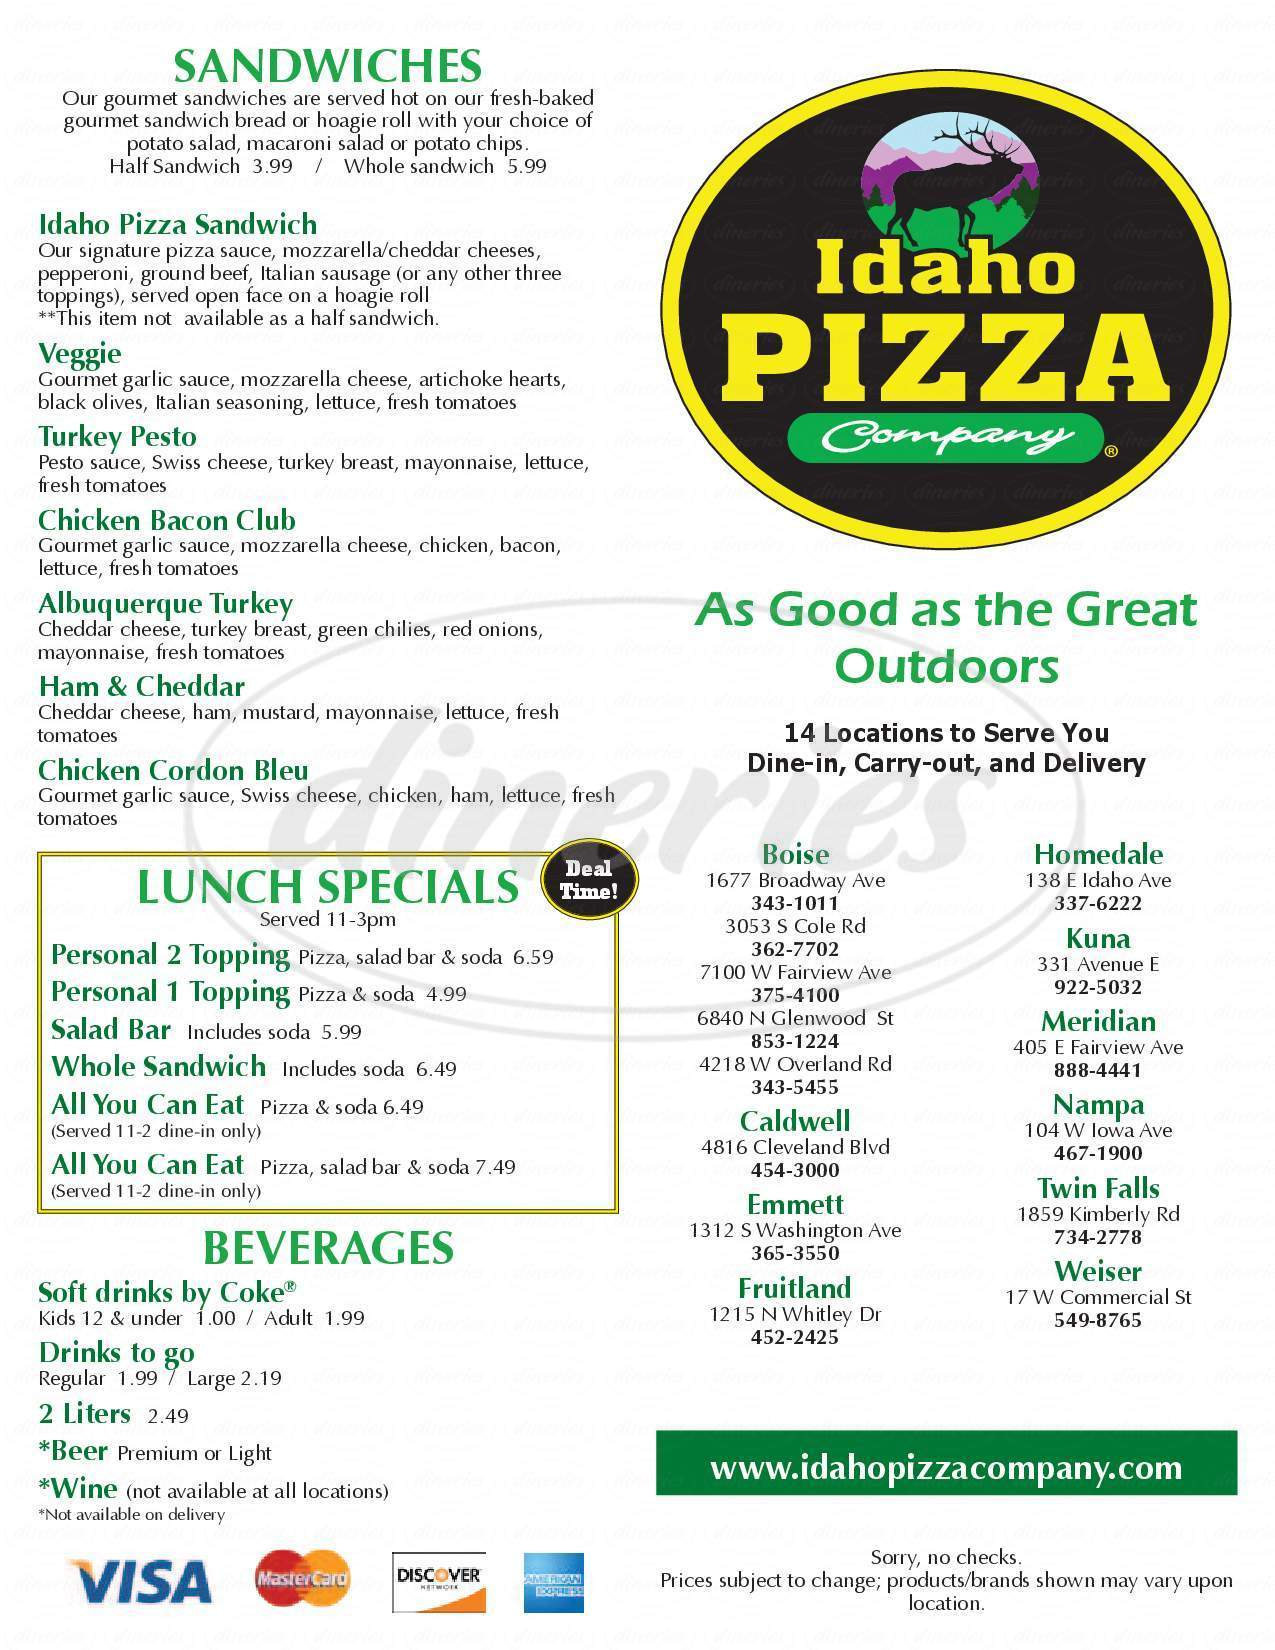 menu for Idaho Pizza Company